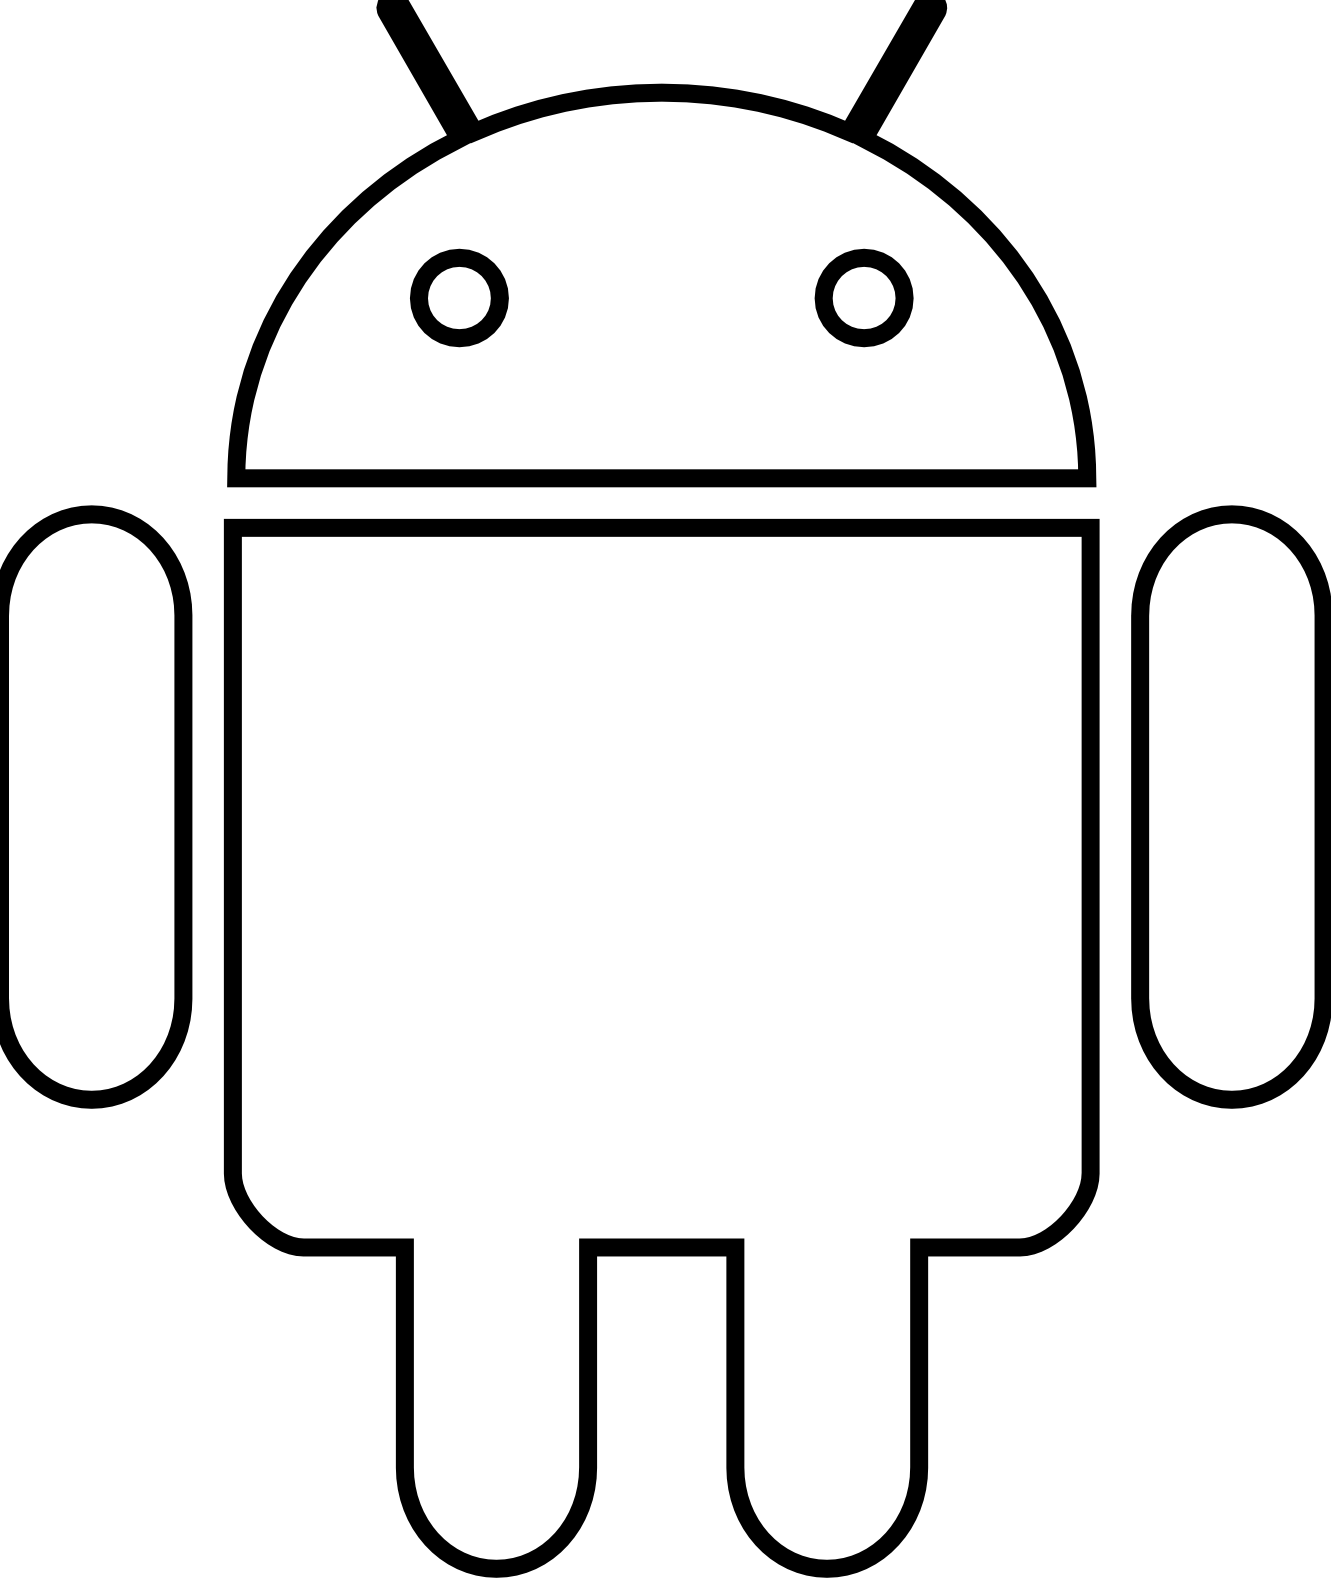 18 robot clipart free cliparts that you can download to you computer ...